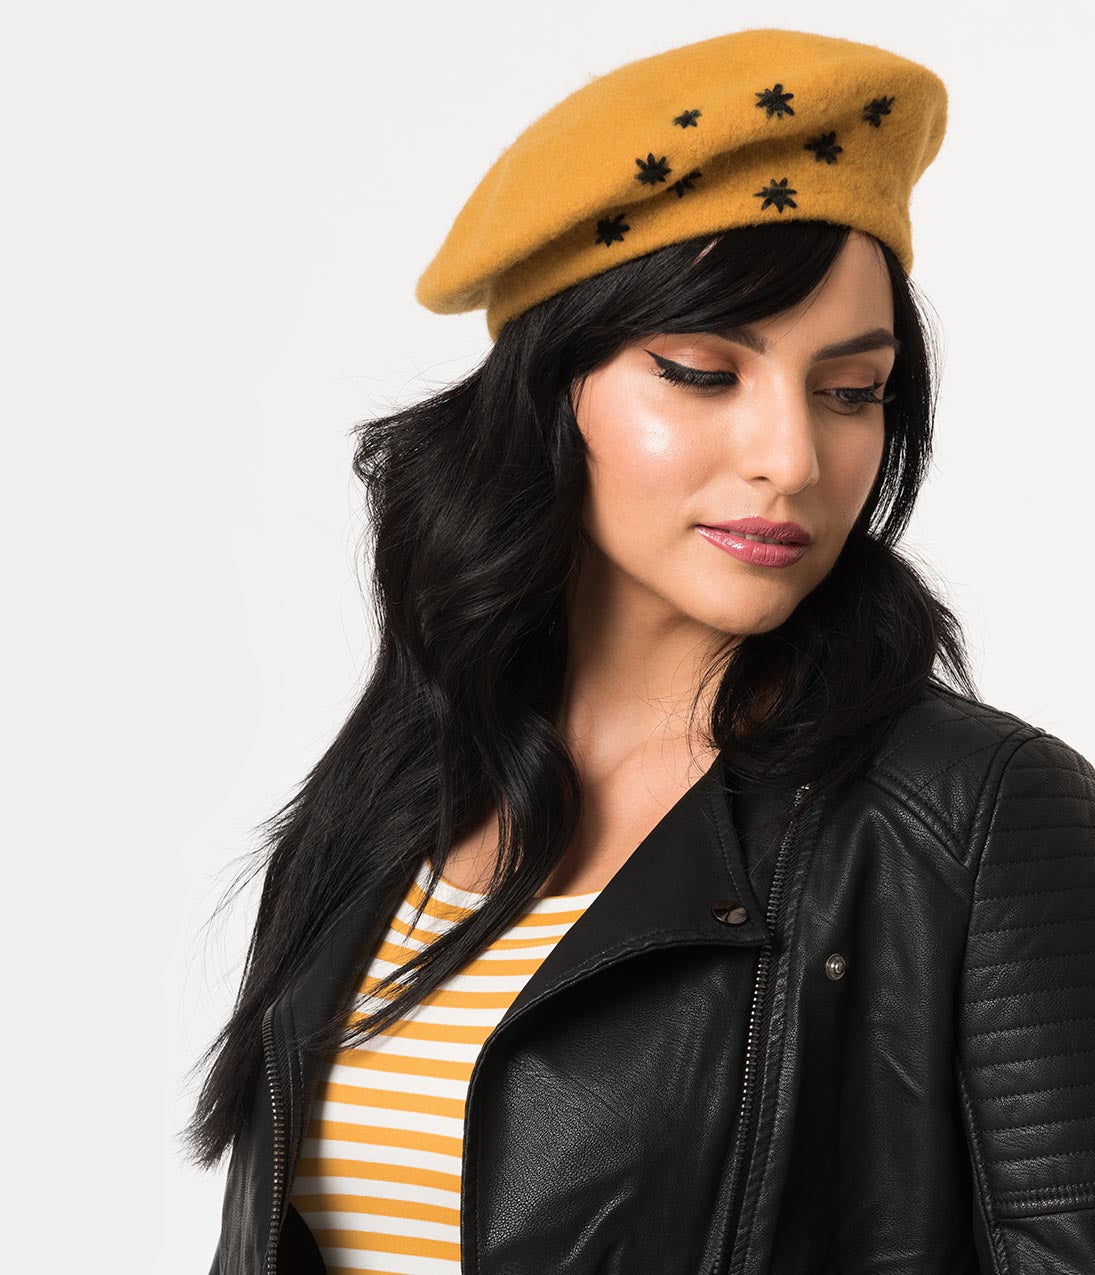 Women's Vintage Hats | Old Fashioned Hats | Retro Hats Vintage Style Mustard Yellow Wool Black Star Embroidered Beret $24.00 AT vintagedancer.com